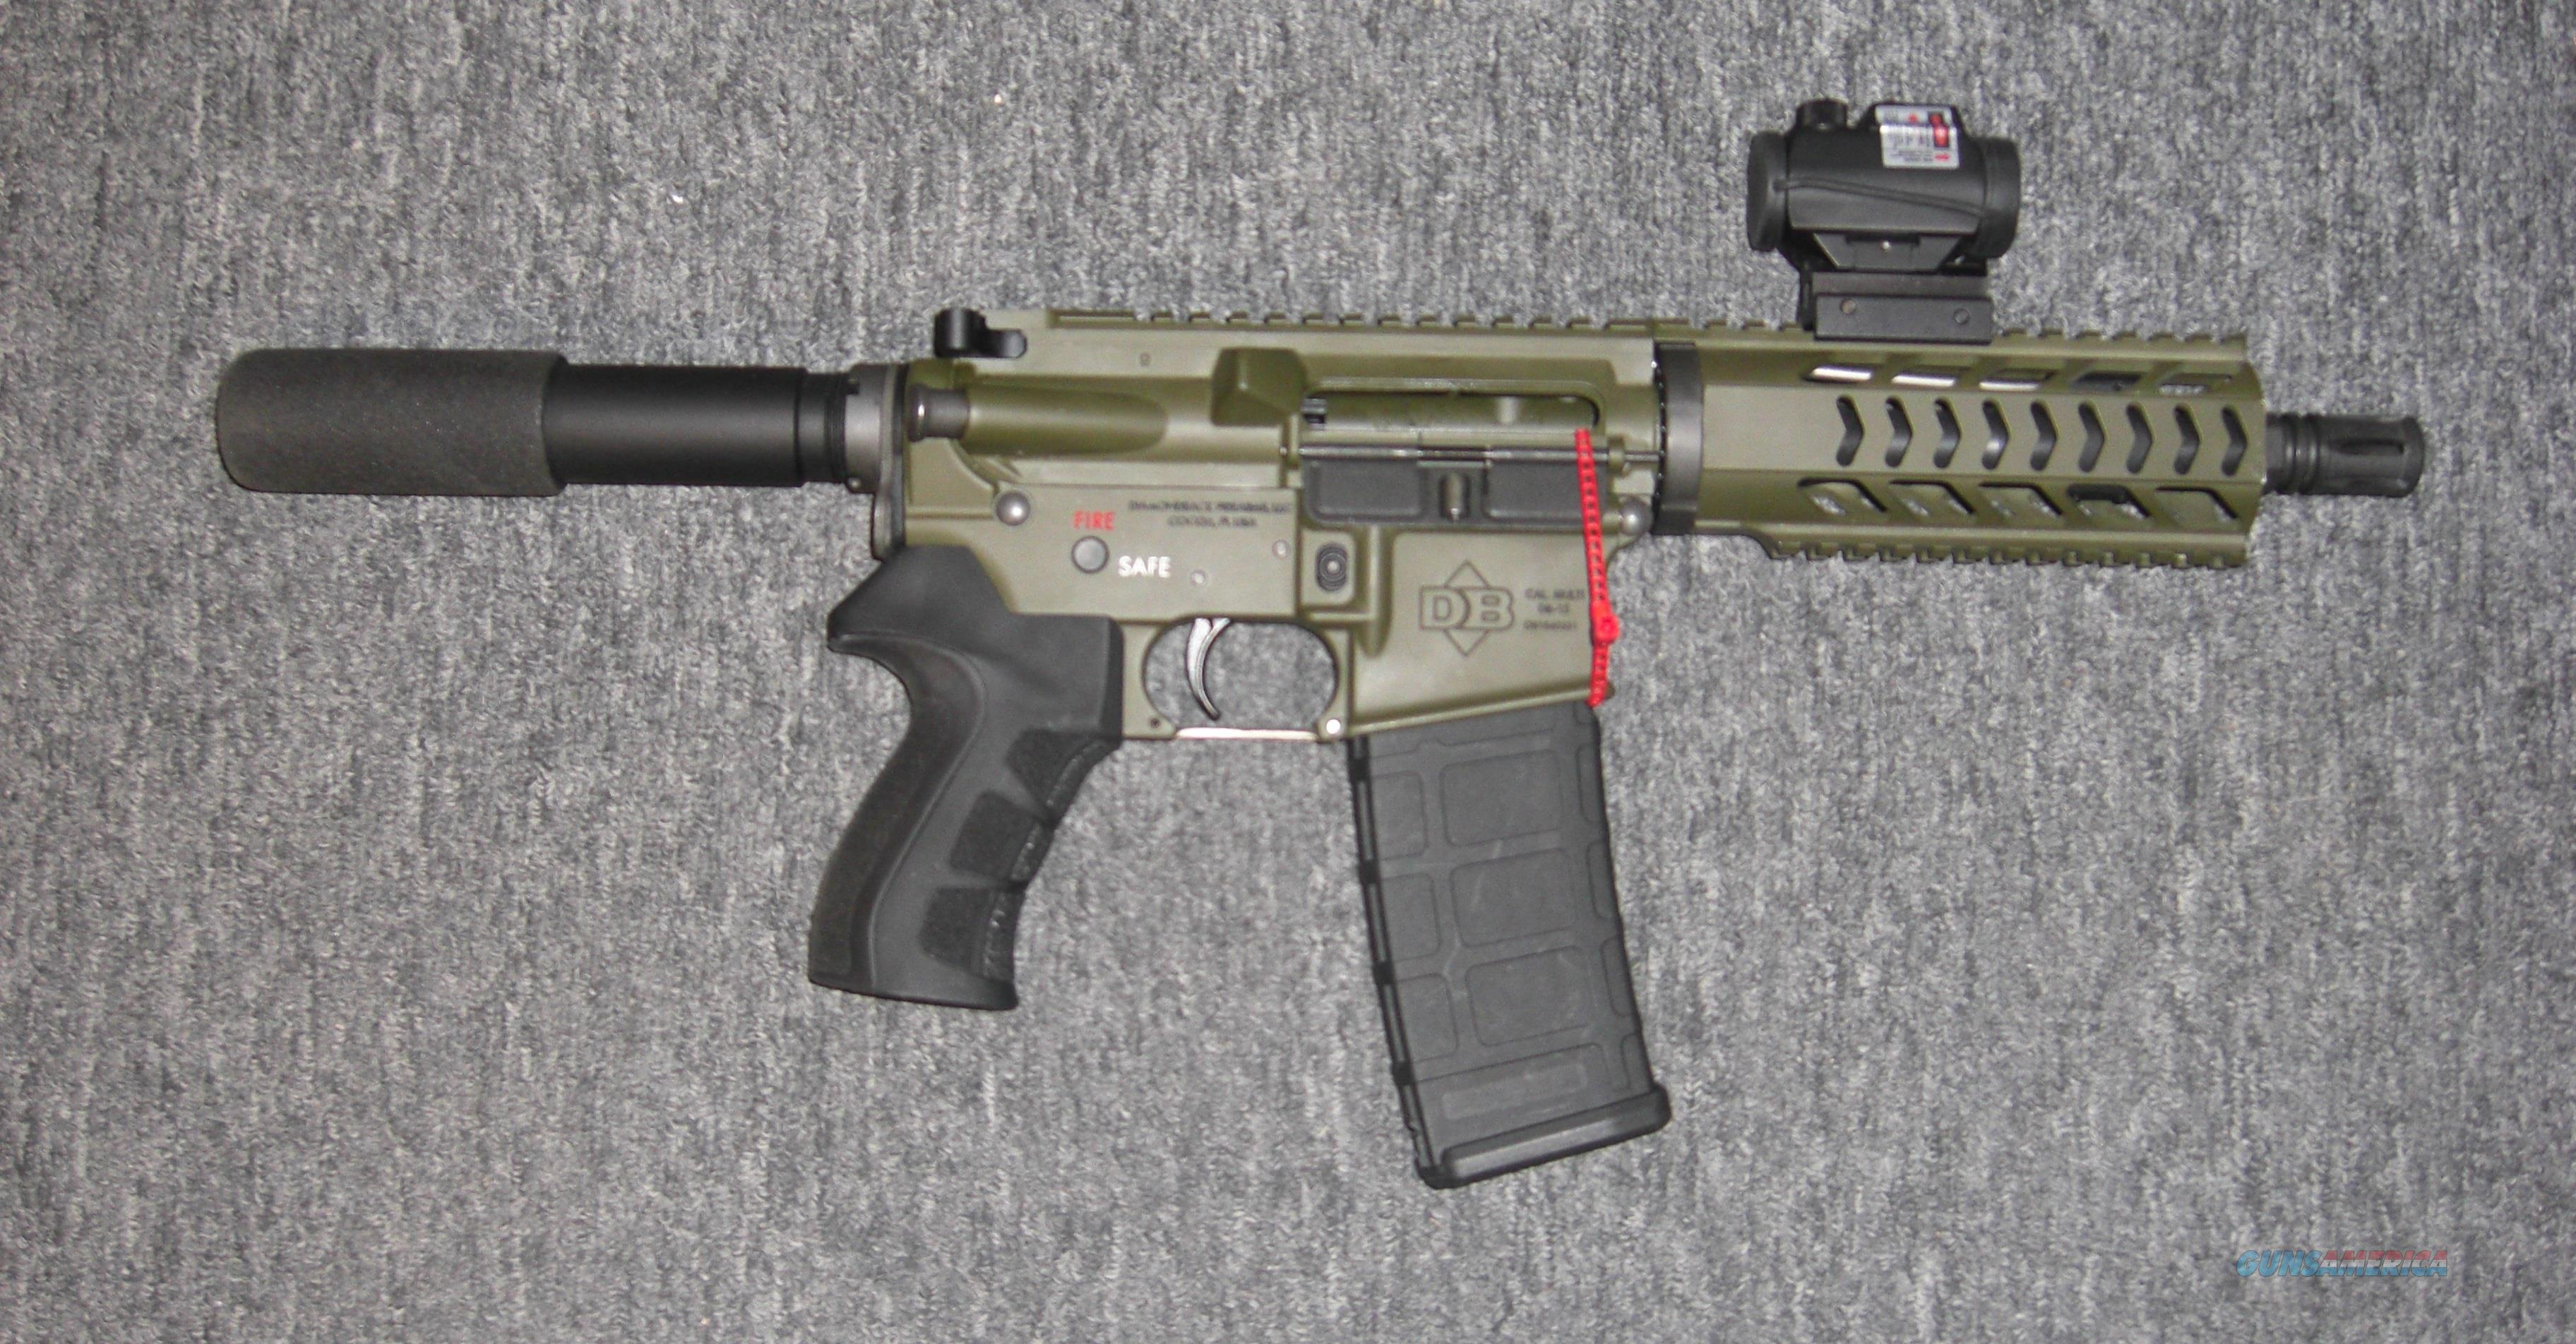 DB-15 pistol w/OD green finish, free floating handguard  Guns > Pistols > Diamondback Pistols